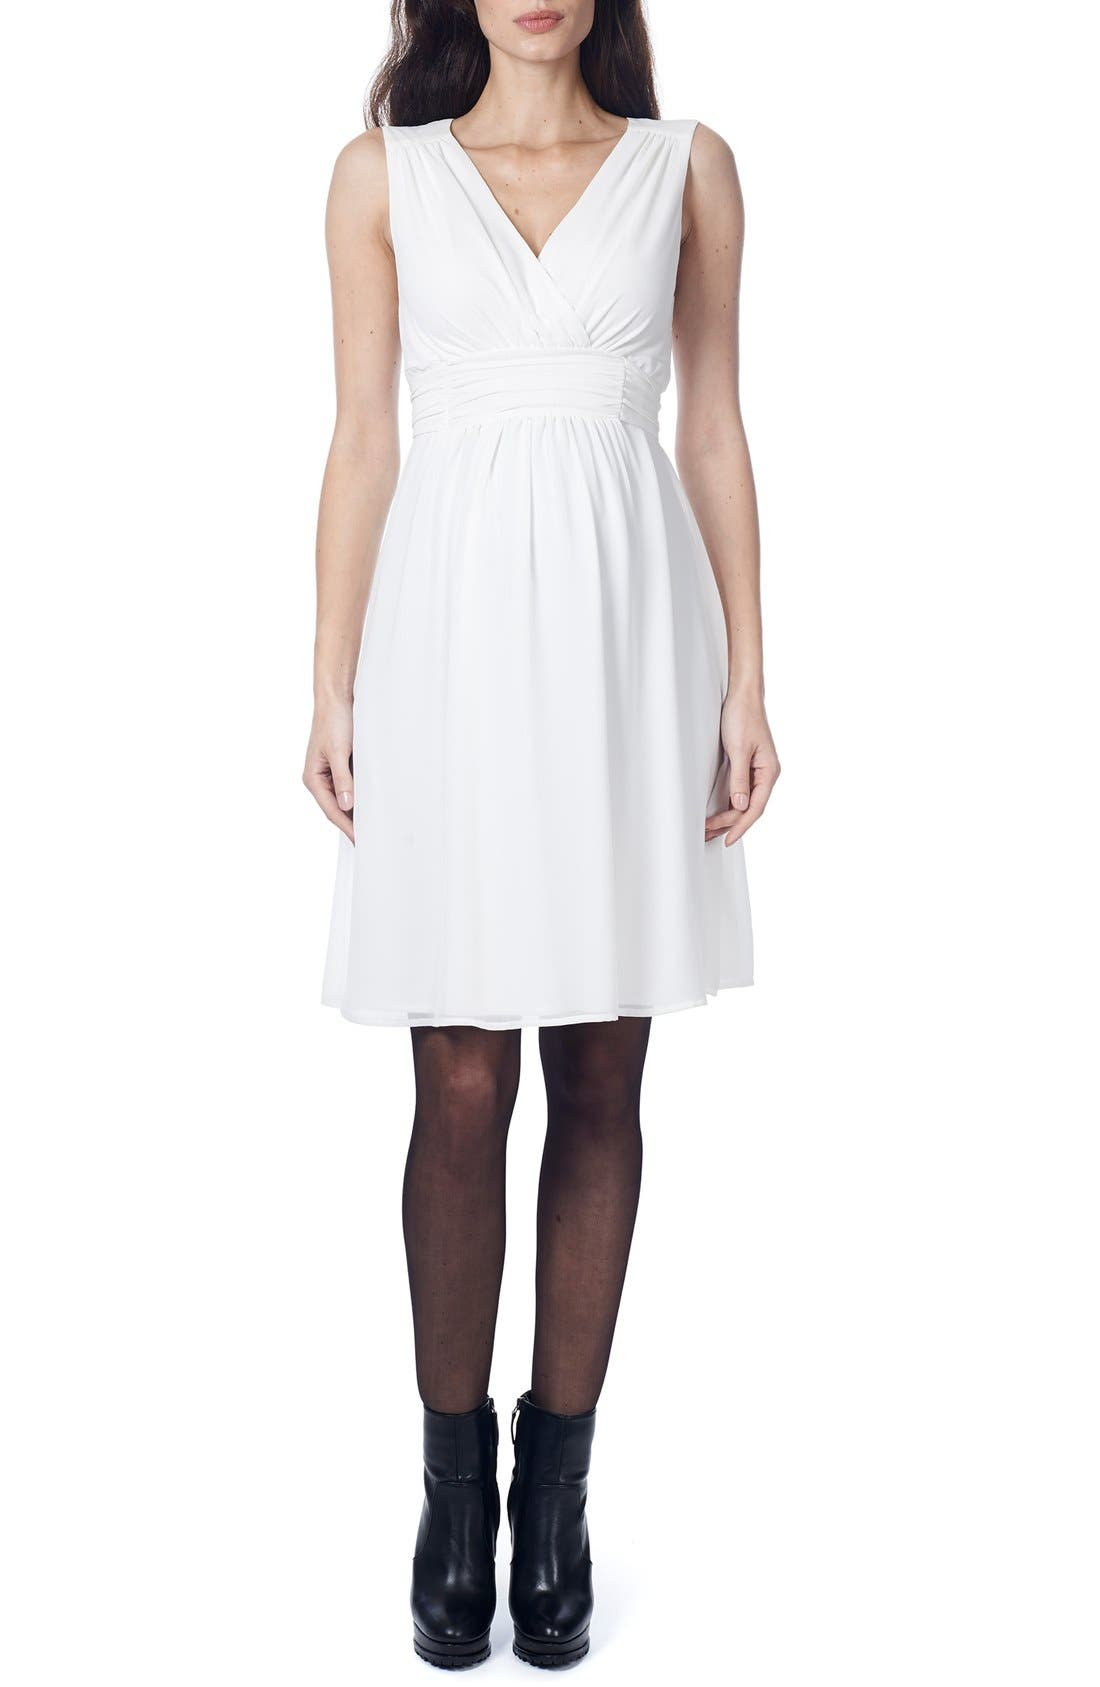 Noppies 'Liane' Maternity Sleeveless Dress